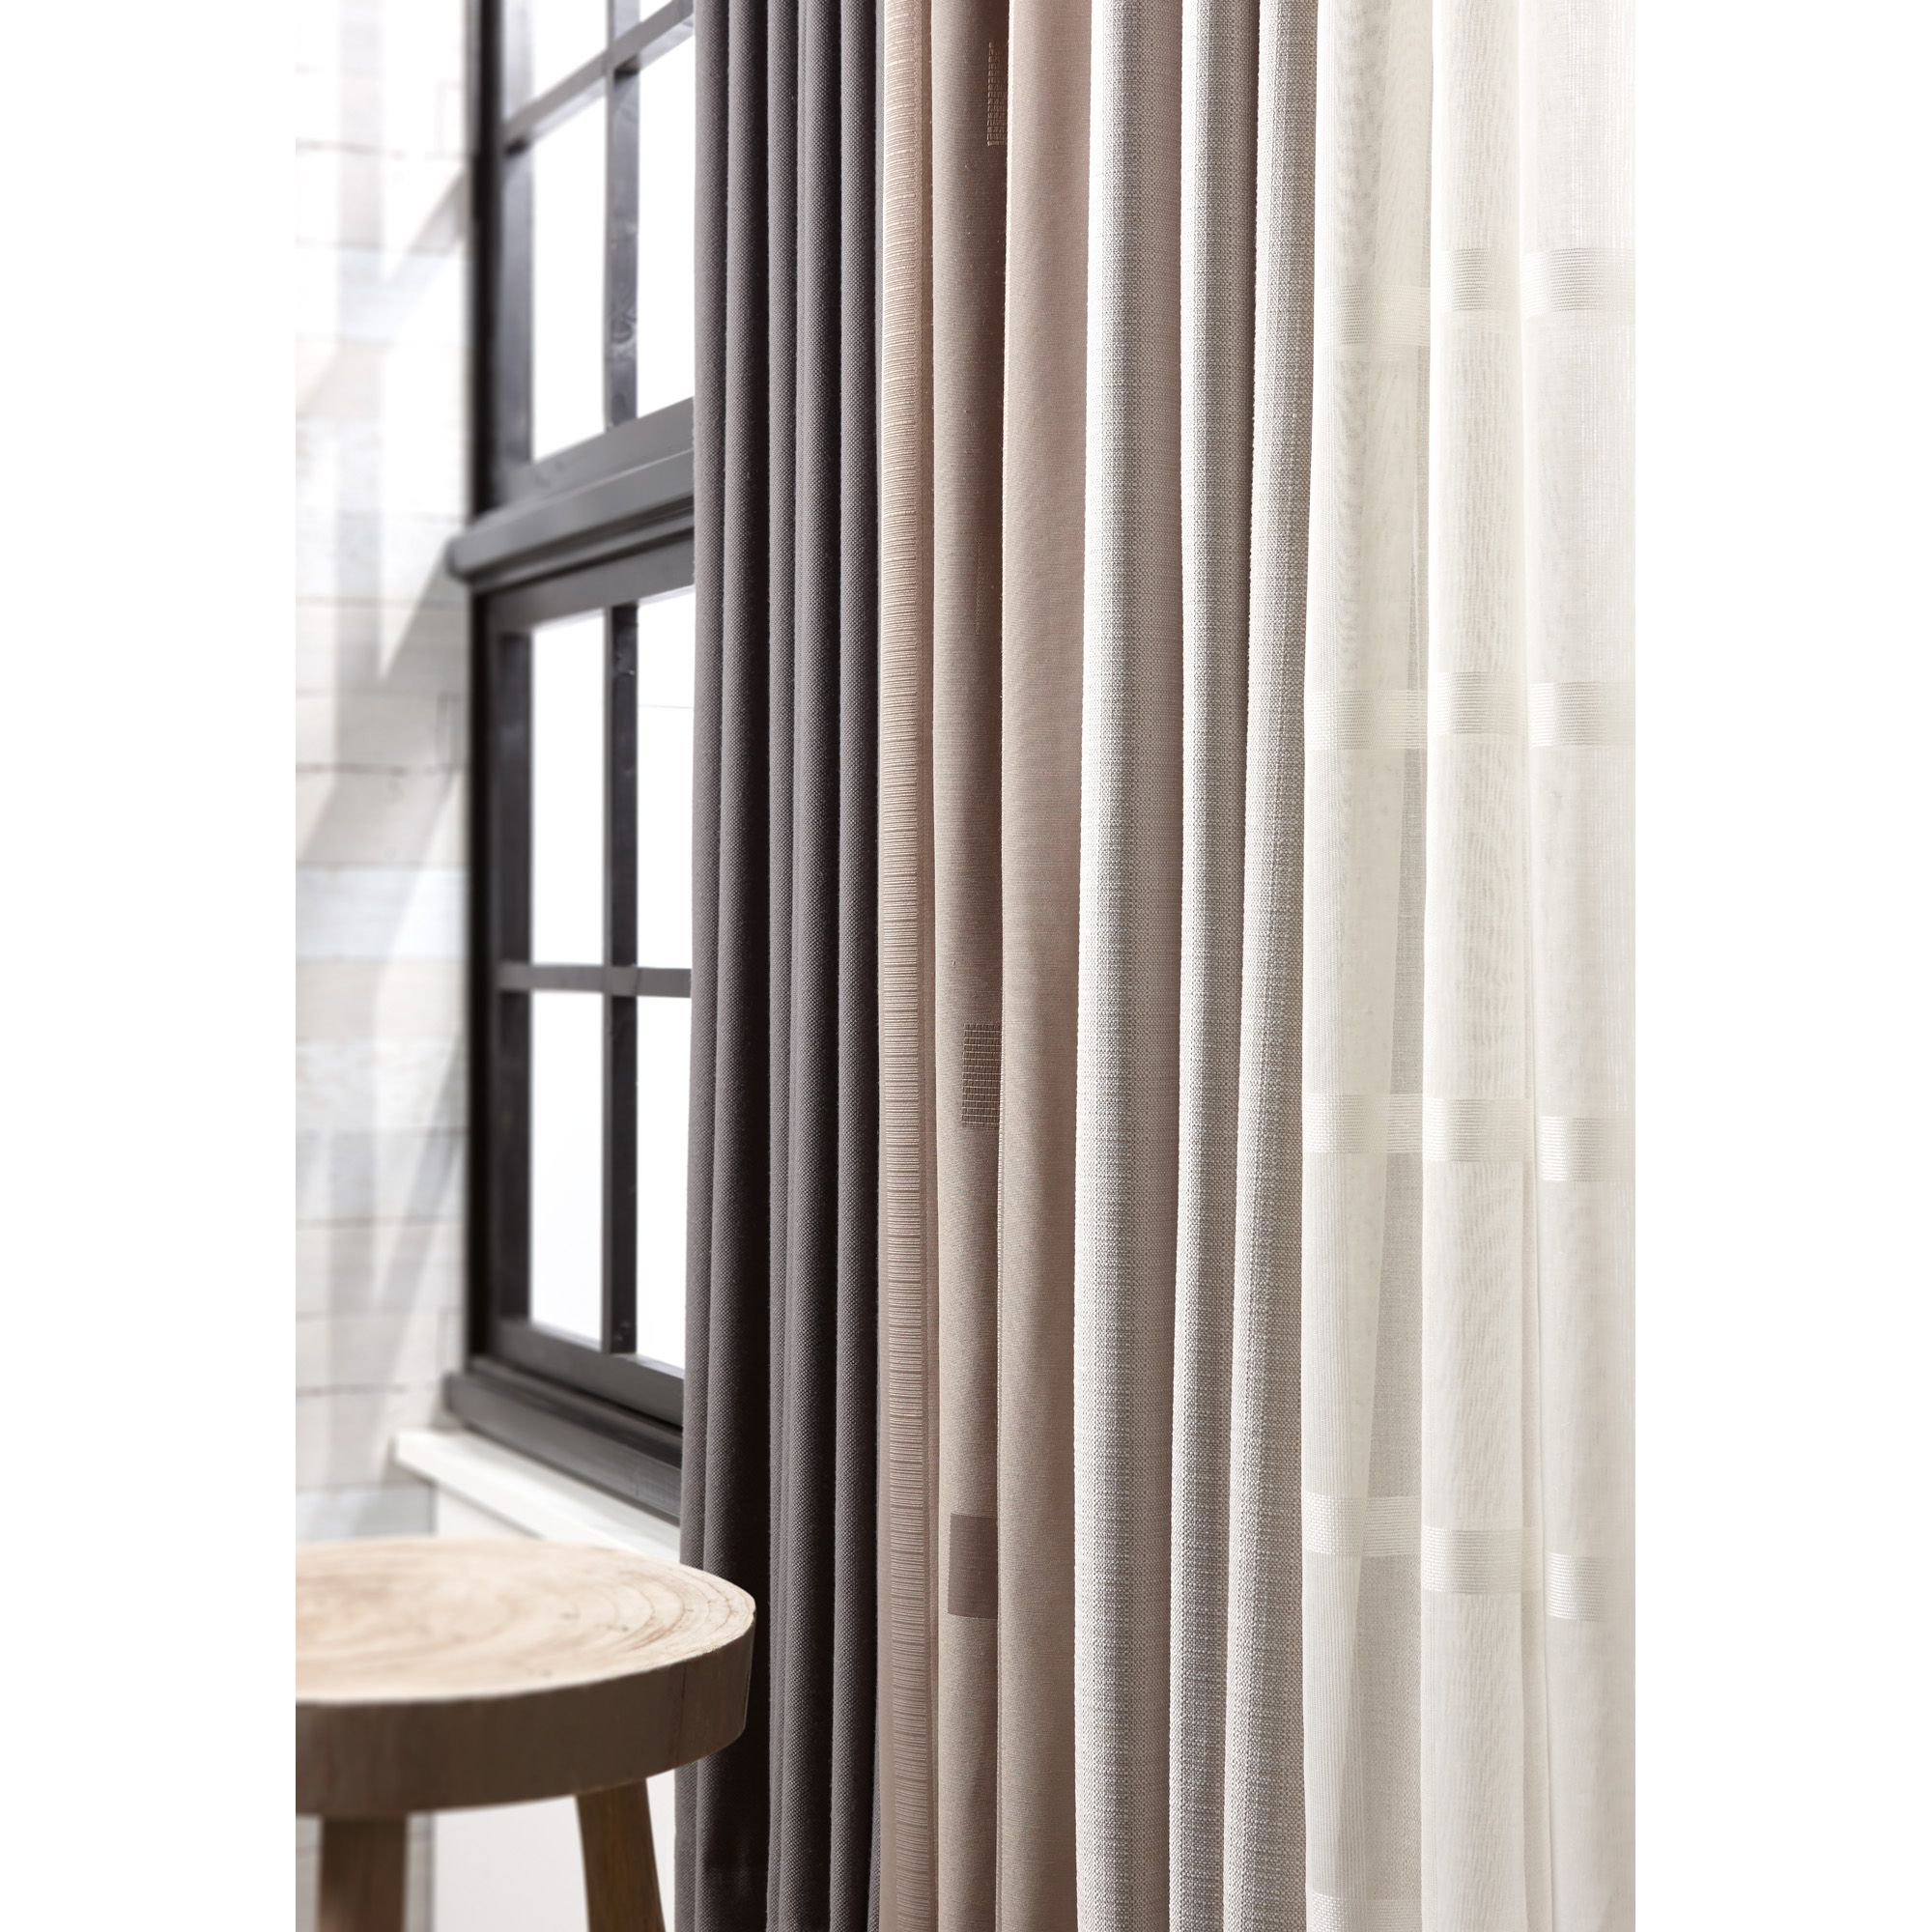 Goedkope Gordijnen Voor Rails Pin By Kwantum On Raambekleding Home Decor Home Curtains